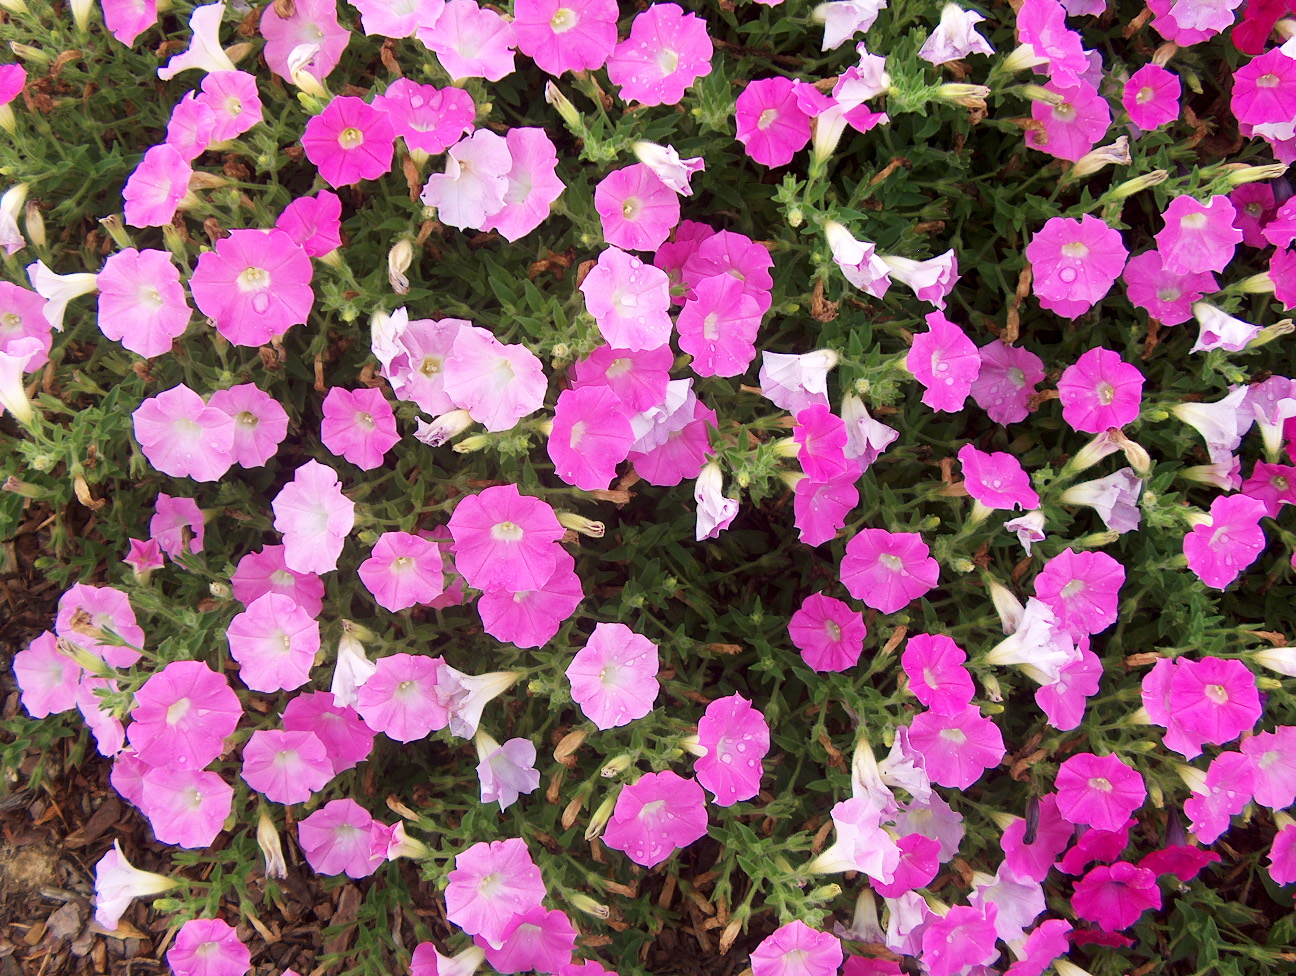 Petunia 'Shock Wave Pink Shades' / Petunia 'Shock Wave Pink Shades'